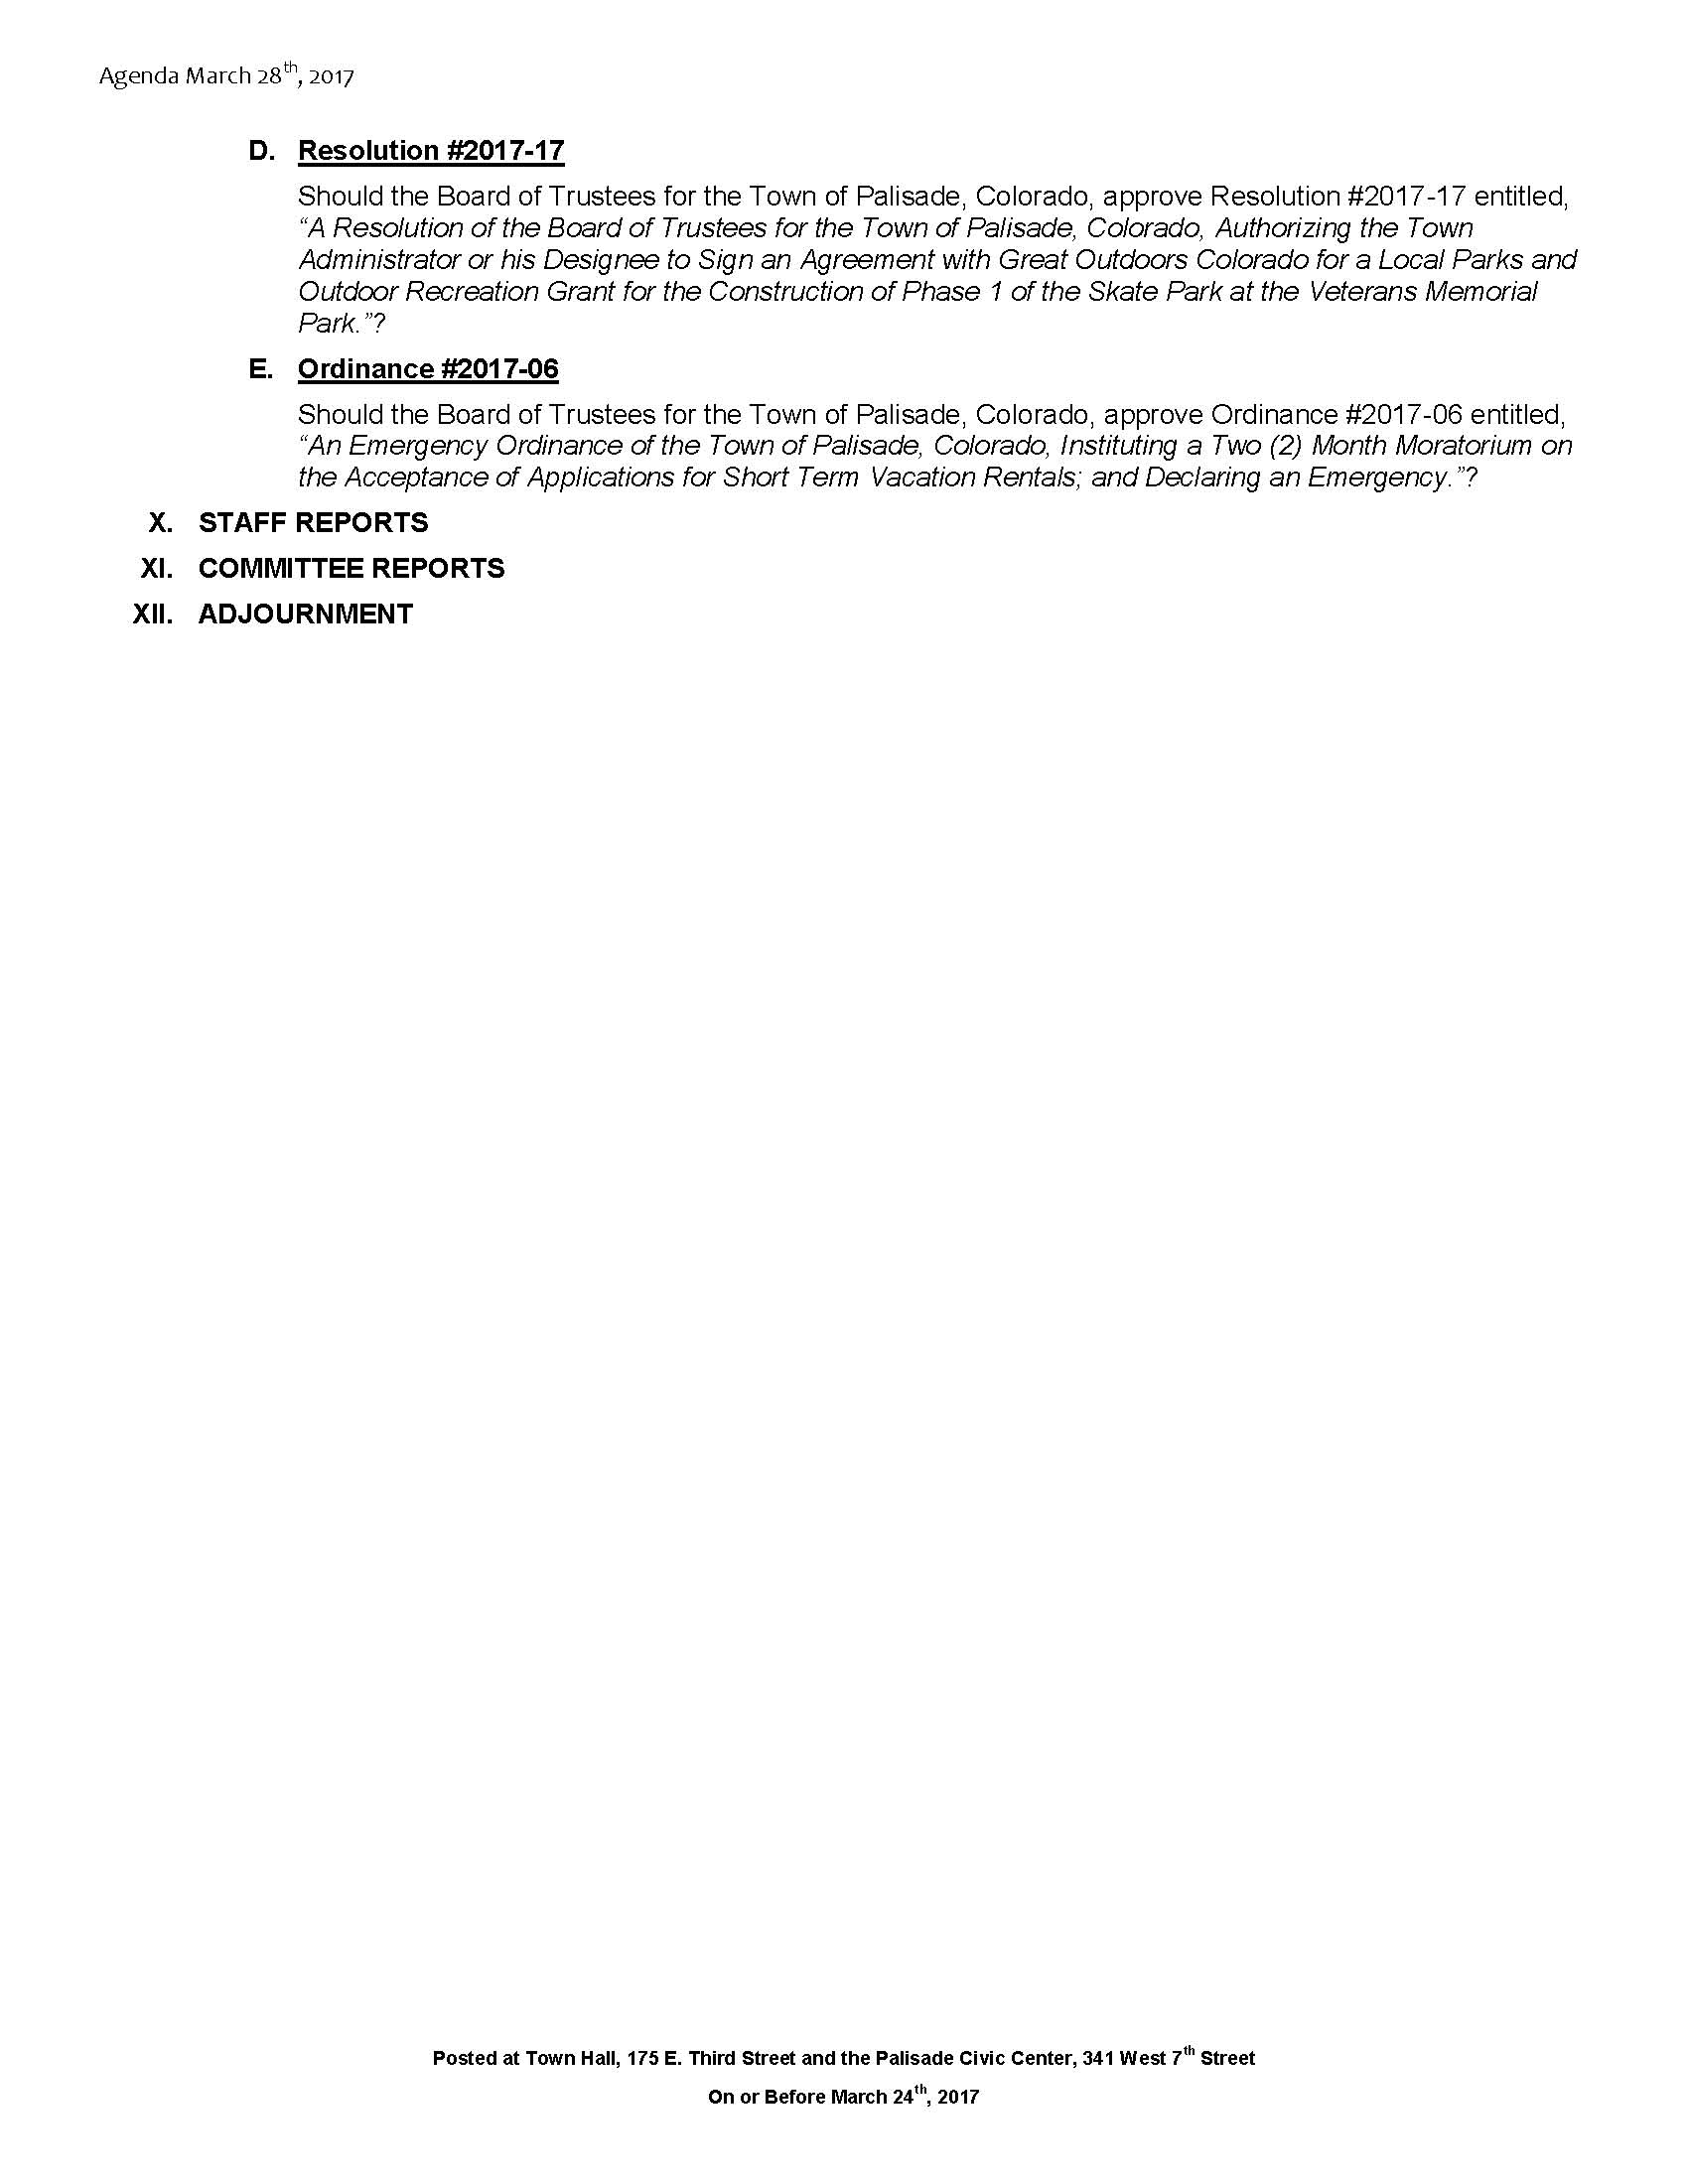 March 28th 2017 Board Meeting Agenda Page 2